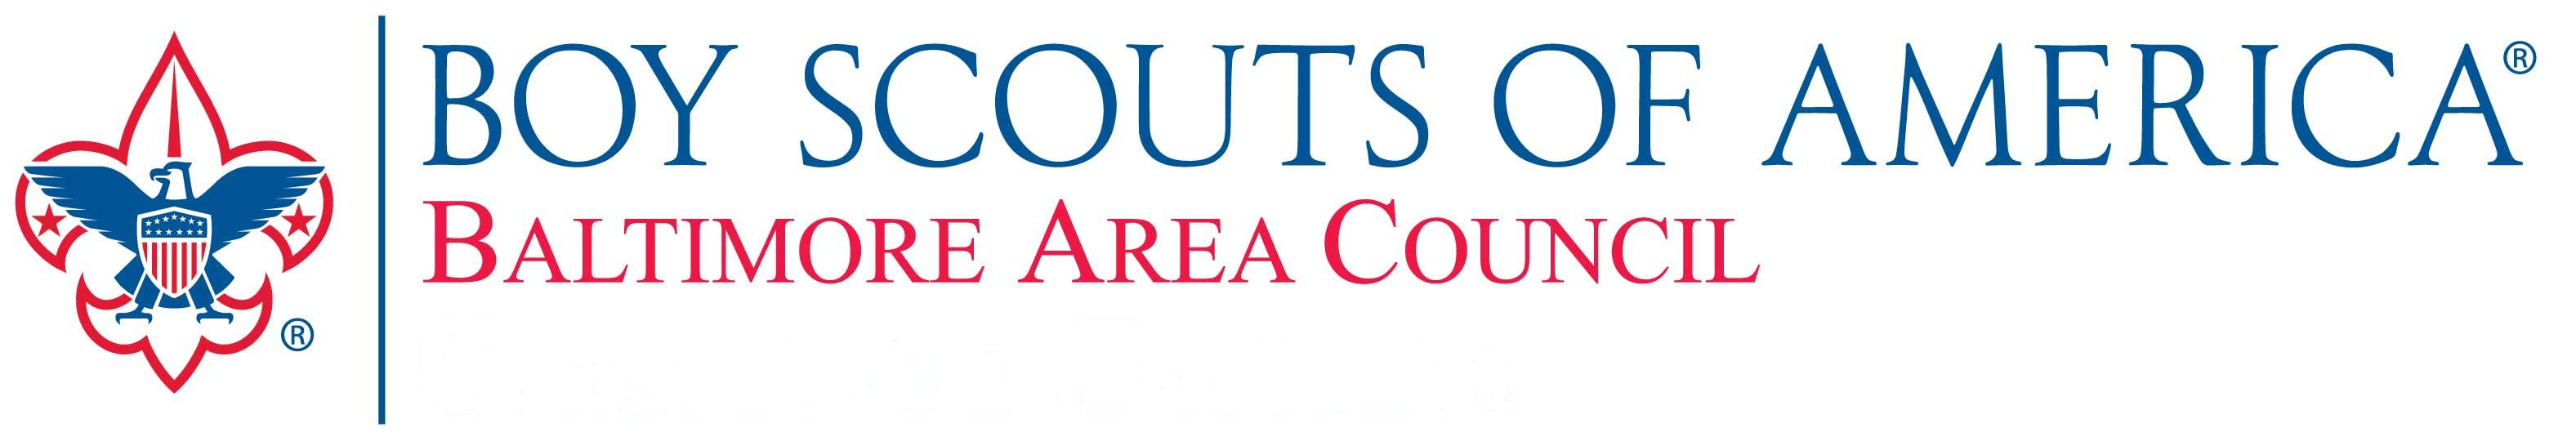 This is the logo for the Boy Scouts of America, Baltimore Area Council.  You can click this link to take you to the Home Page